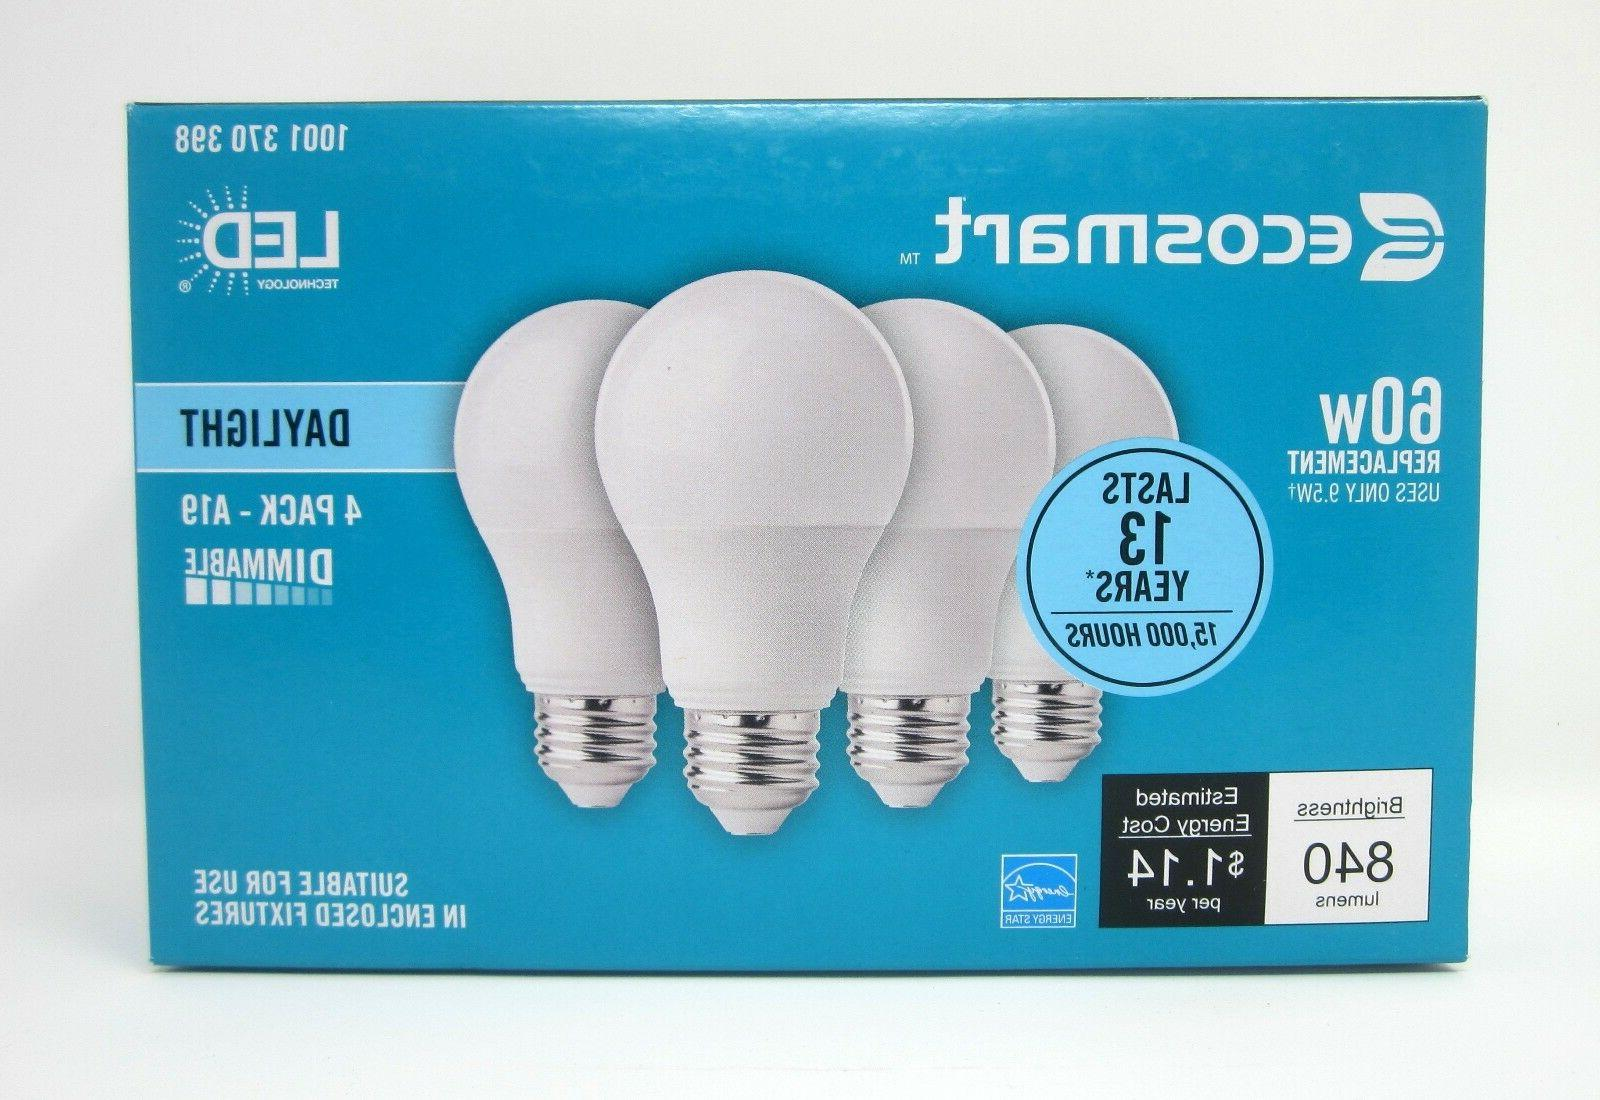 60 watt A19 dimmable save LED bulb 4 Pack